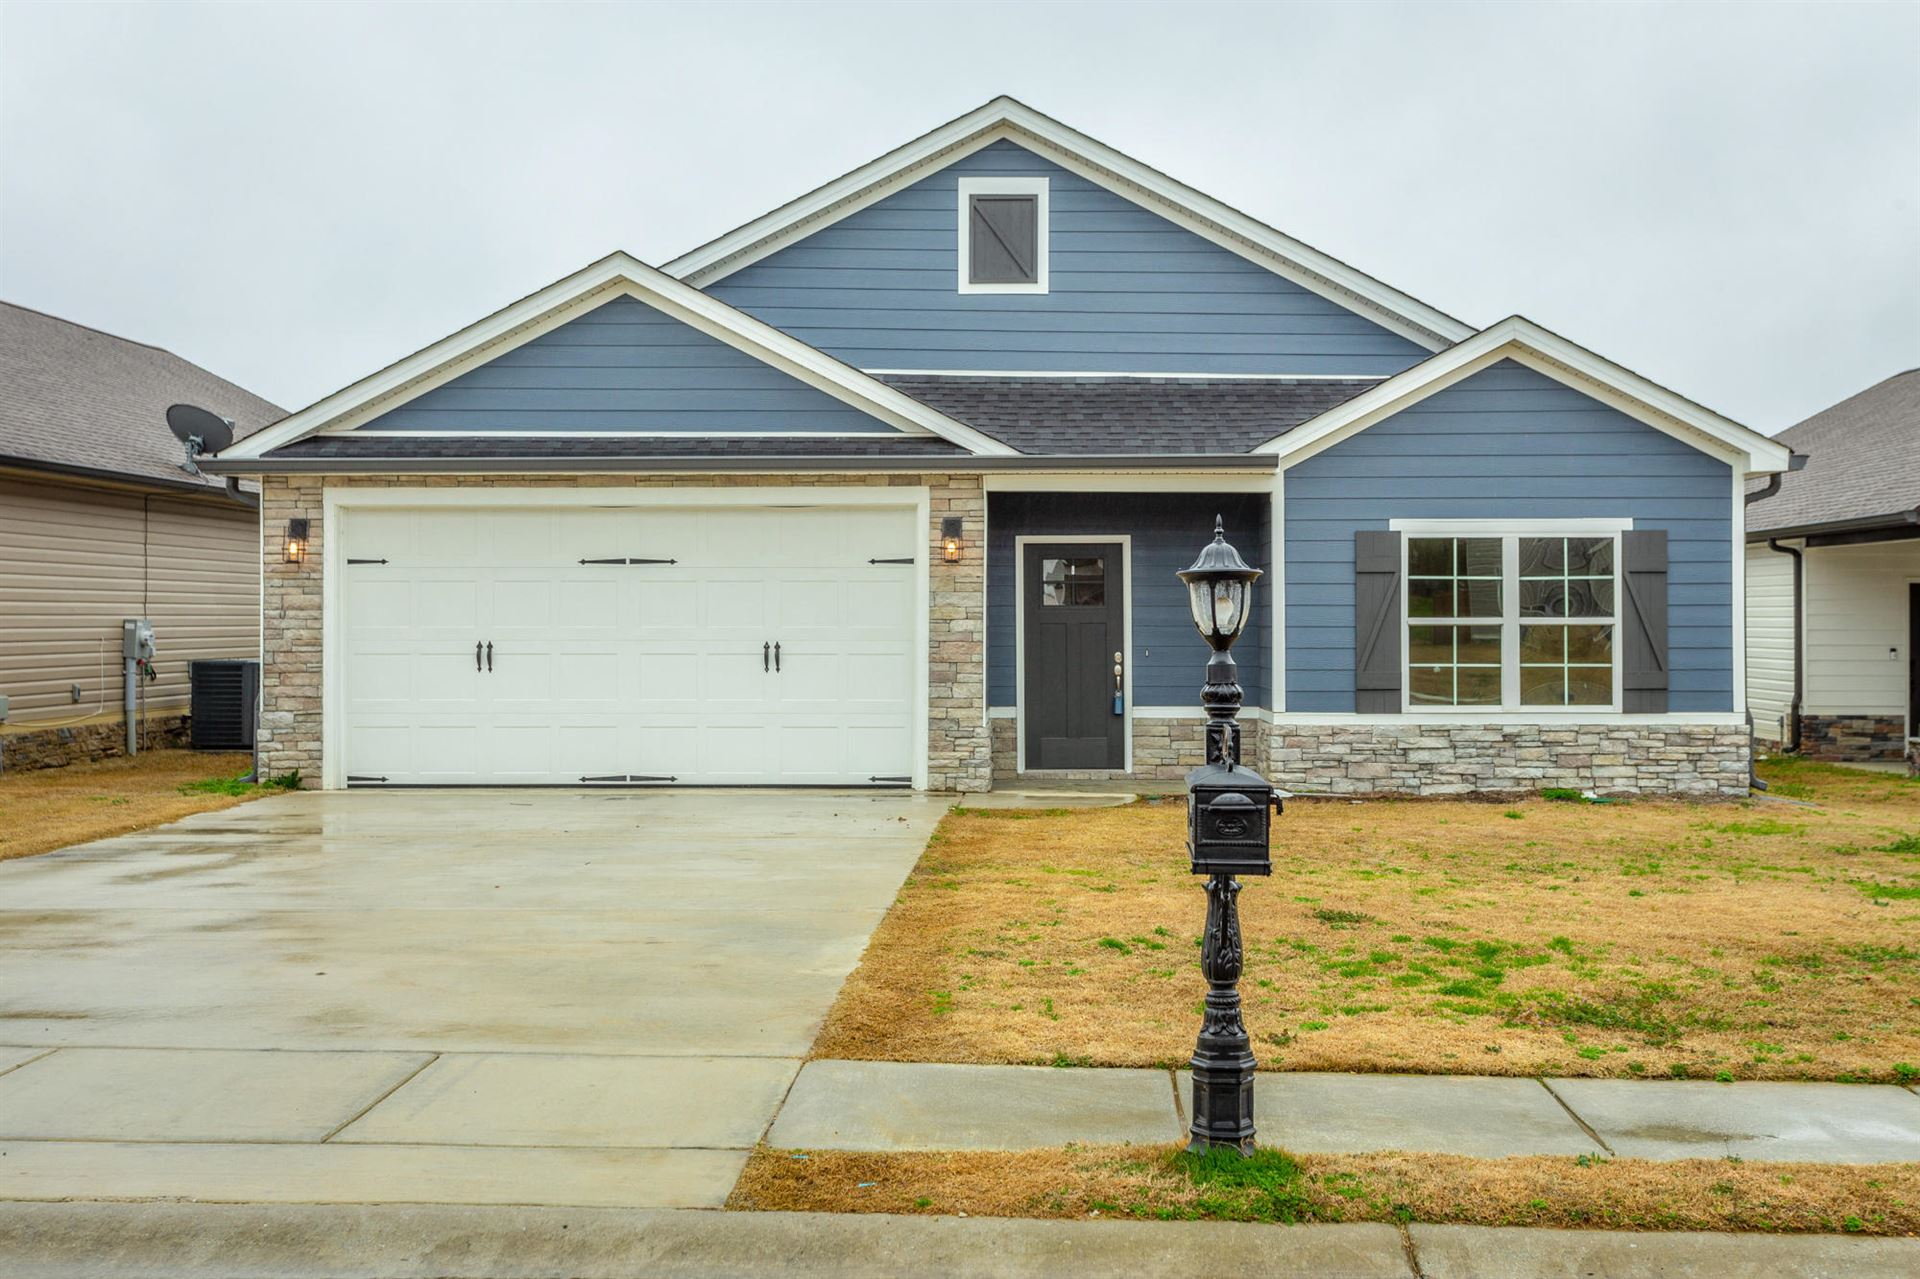 72 Browning Dr, Rossville, GA 30741 - #: 1313689